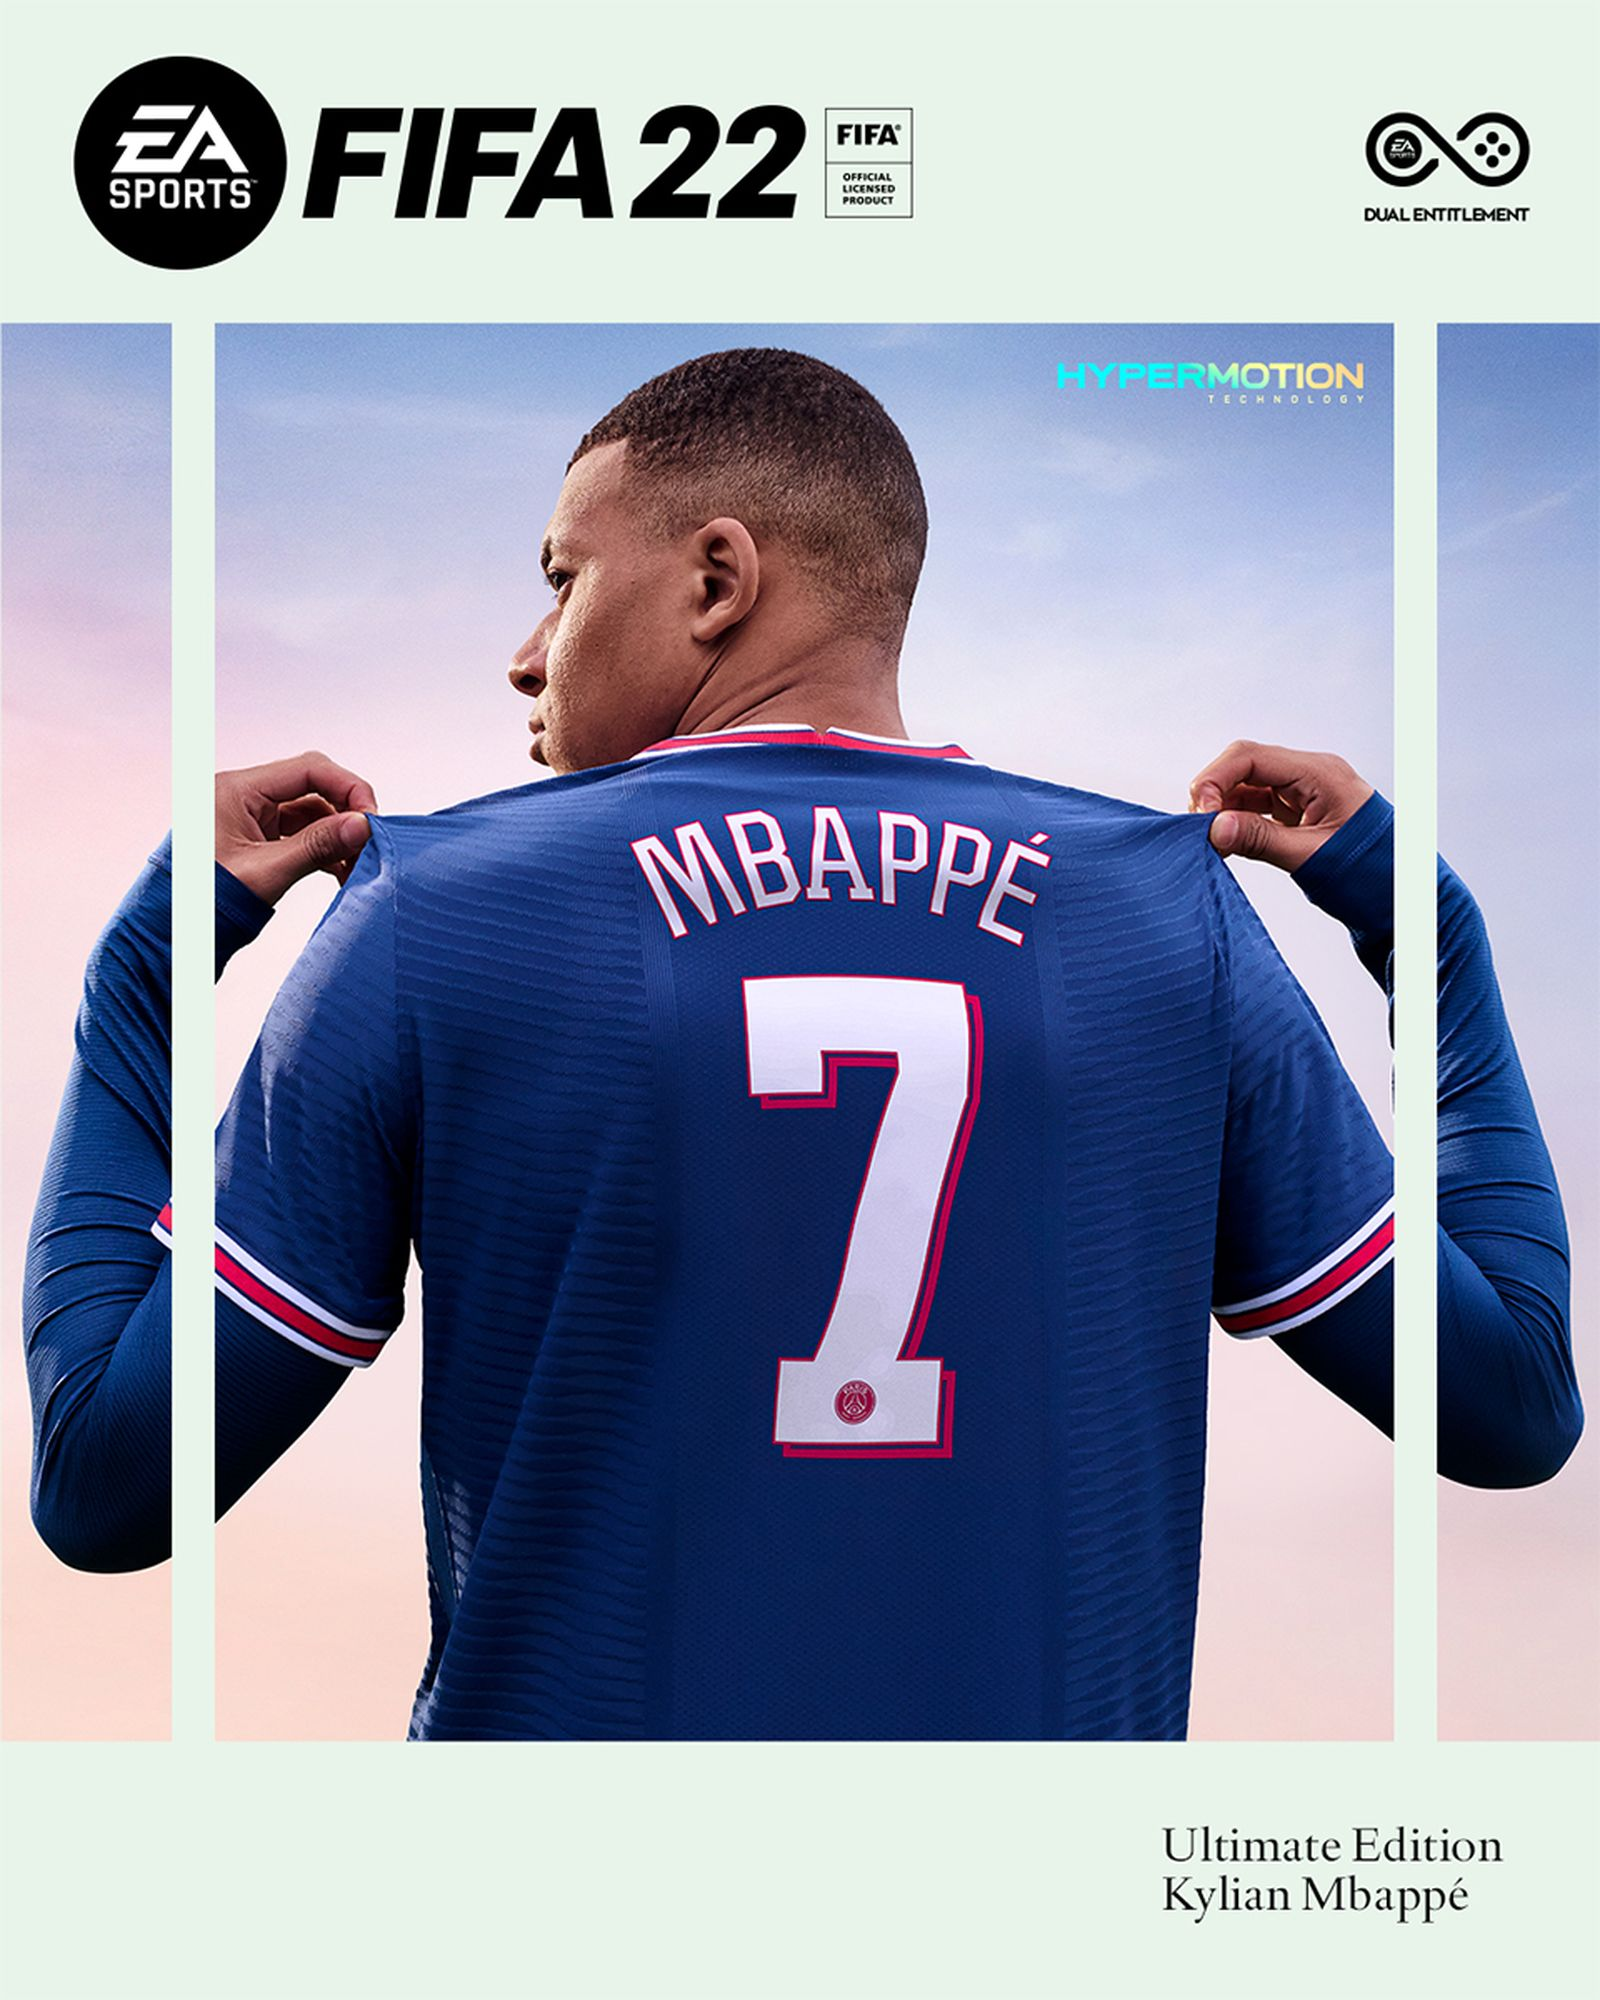 kylian-mbappe-fifa-22-cover-athlete-03